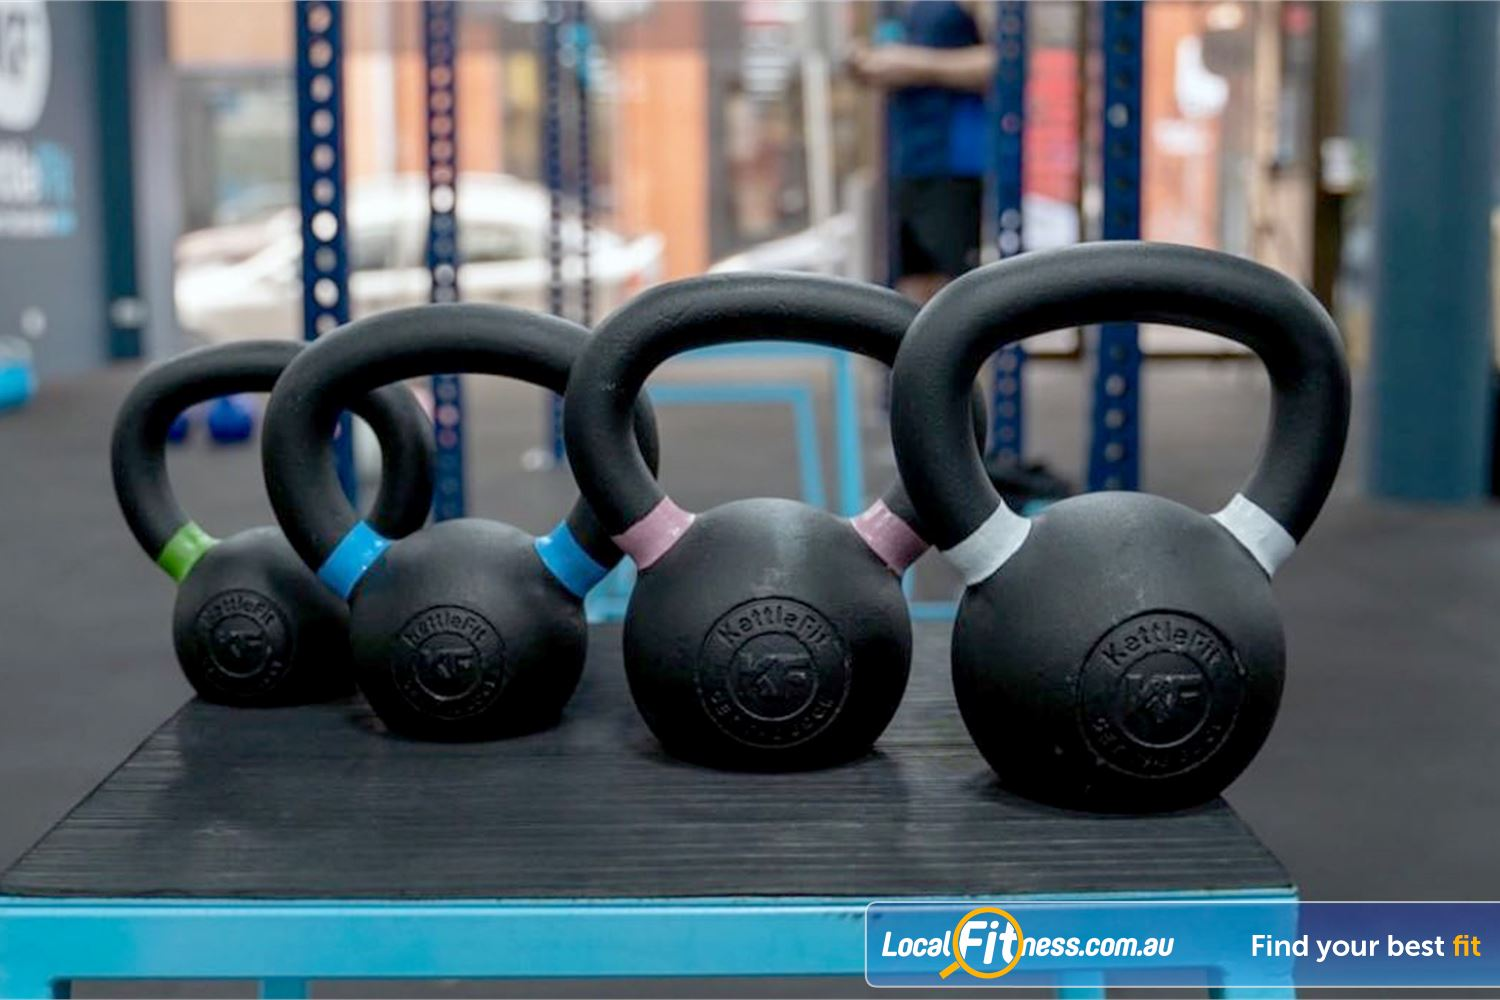 KettleFit Ascot Vale Near Brunswick West Our KettleFit Ascot Vale classes will let you progress at your own pace.